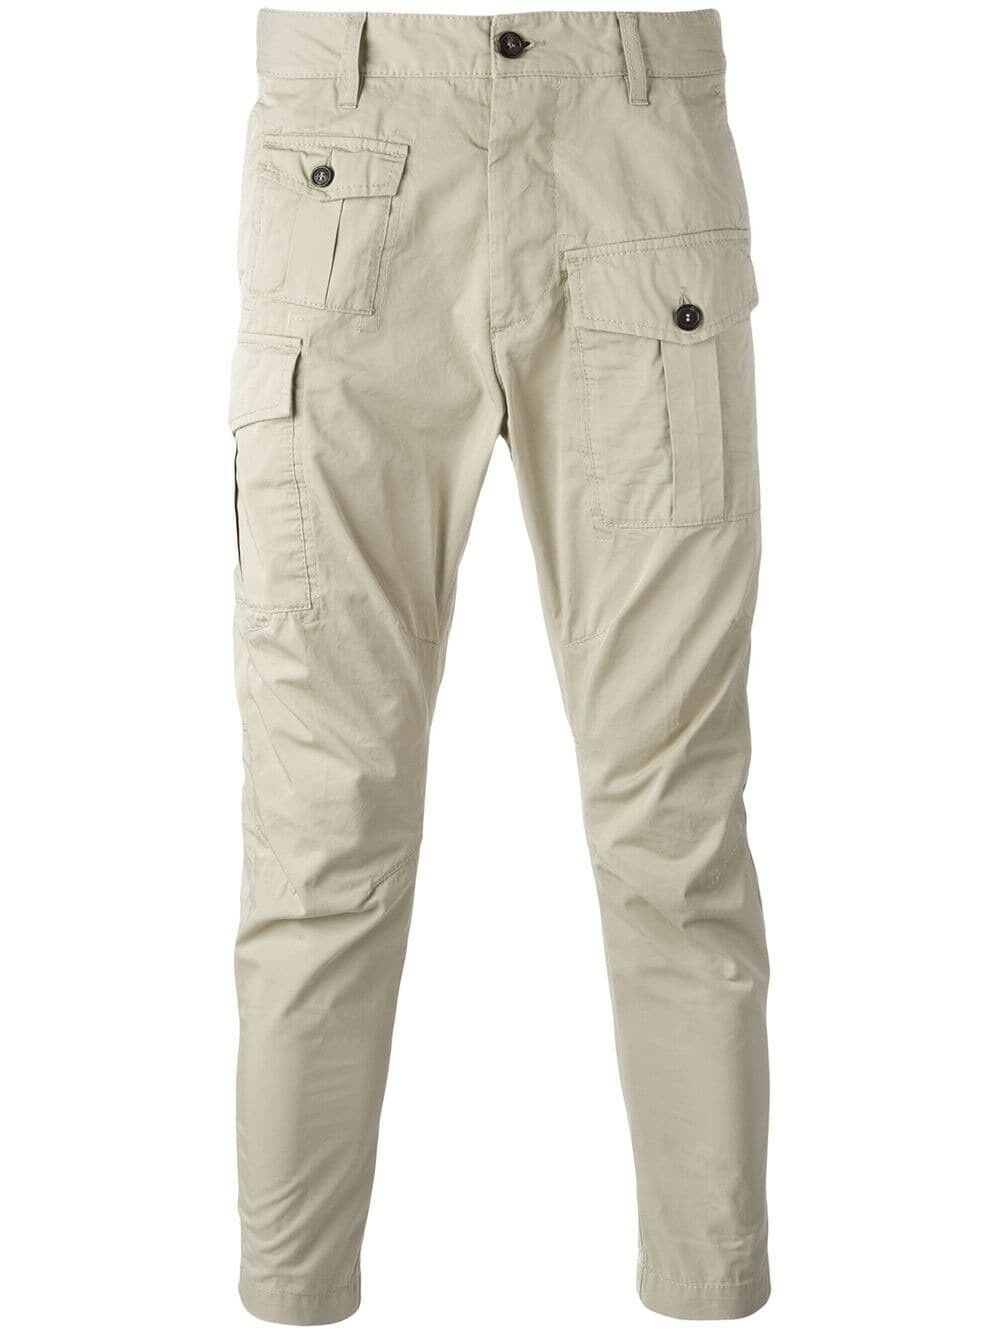 NEW DSQUARED2 Pantaloni Trousers grigio Dimensione  50 - RSP 480